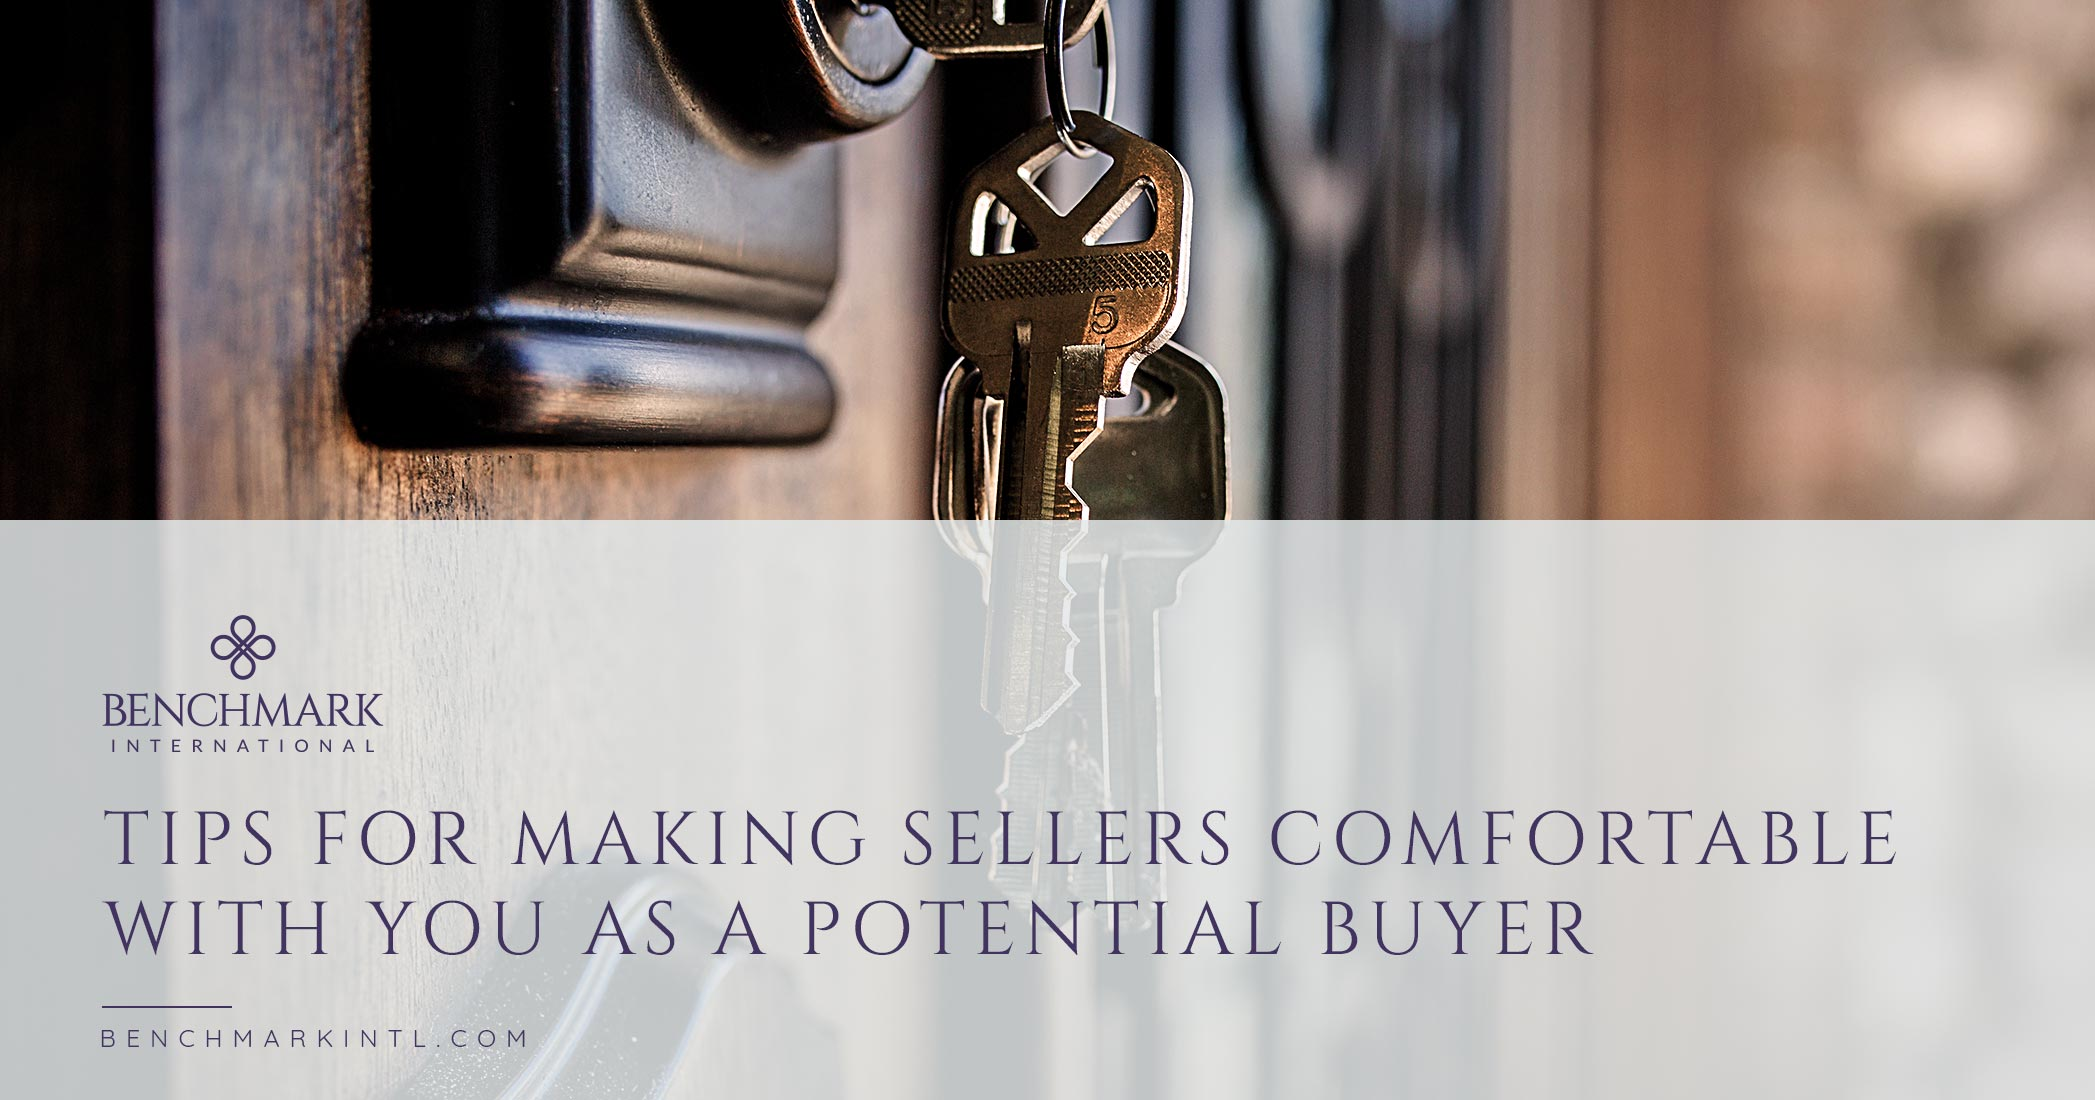 Tips for Making Sellers Comfortable with You as a Potential Buyer